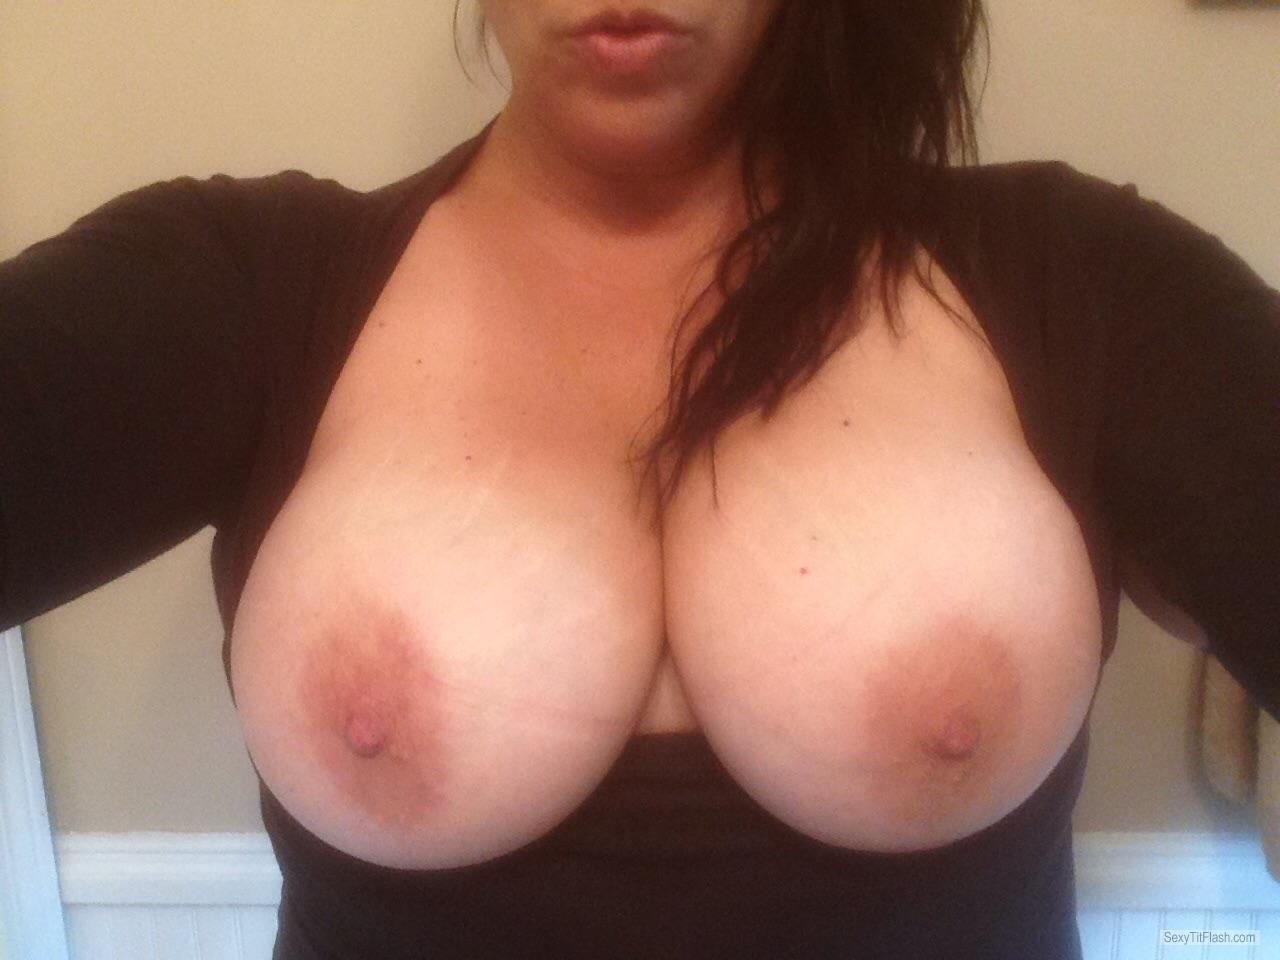 Big Tits Of My Room Mate Selfie by Easy